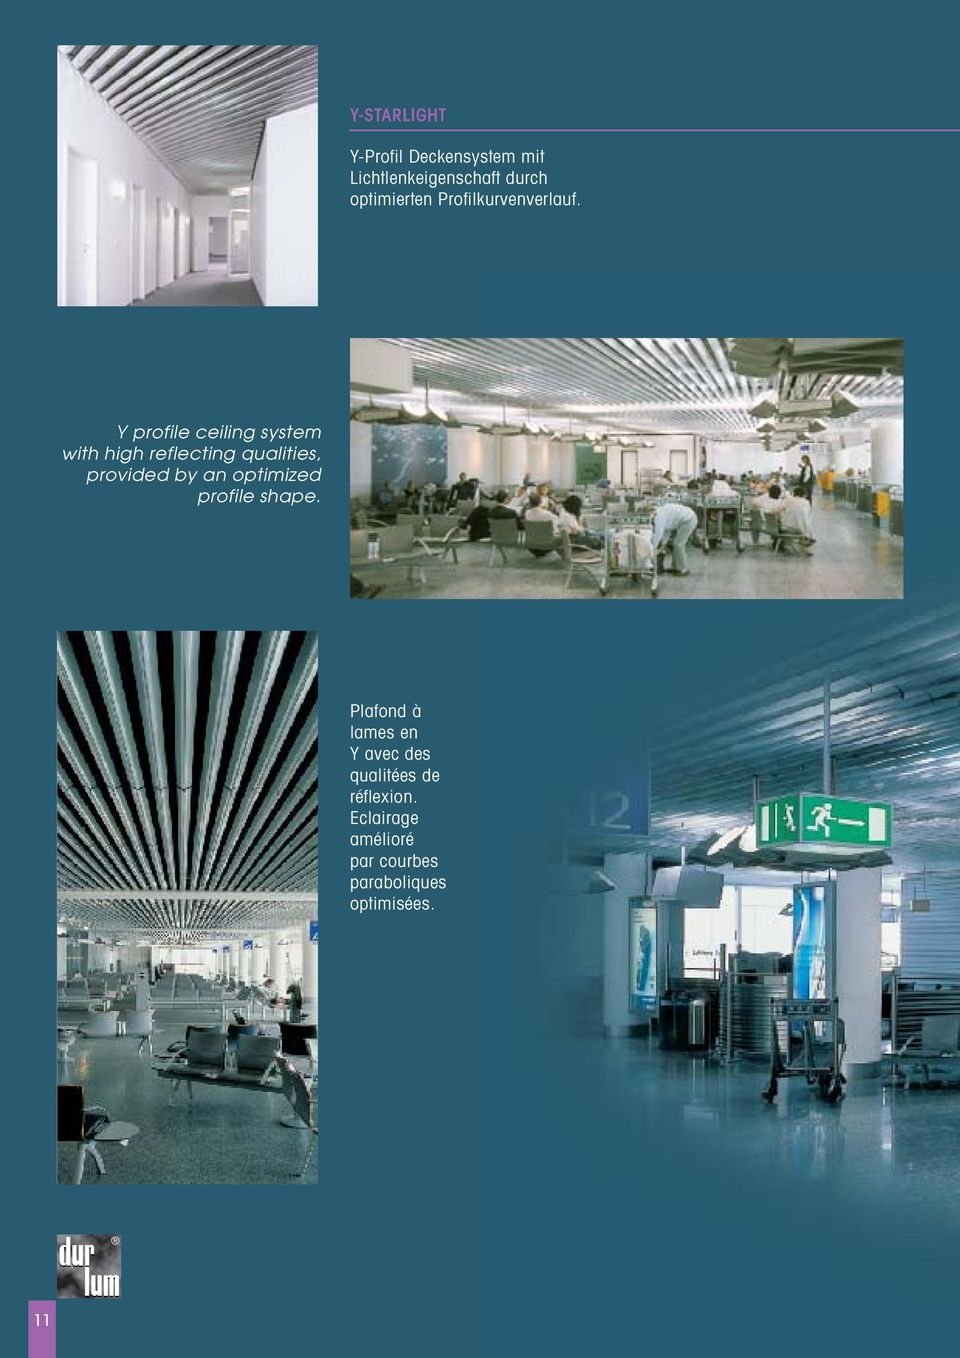 Y profile ceiling system with high reflecting qualities, provided by an optimized